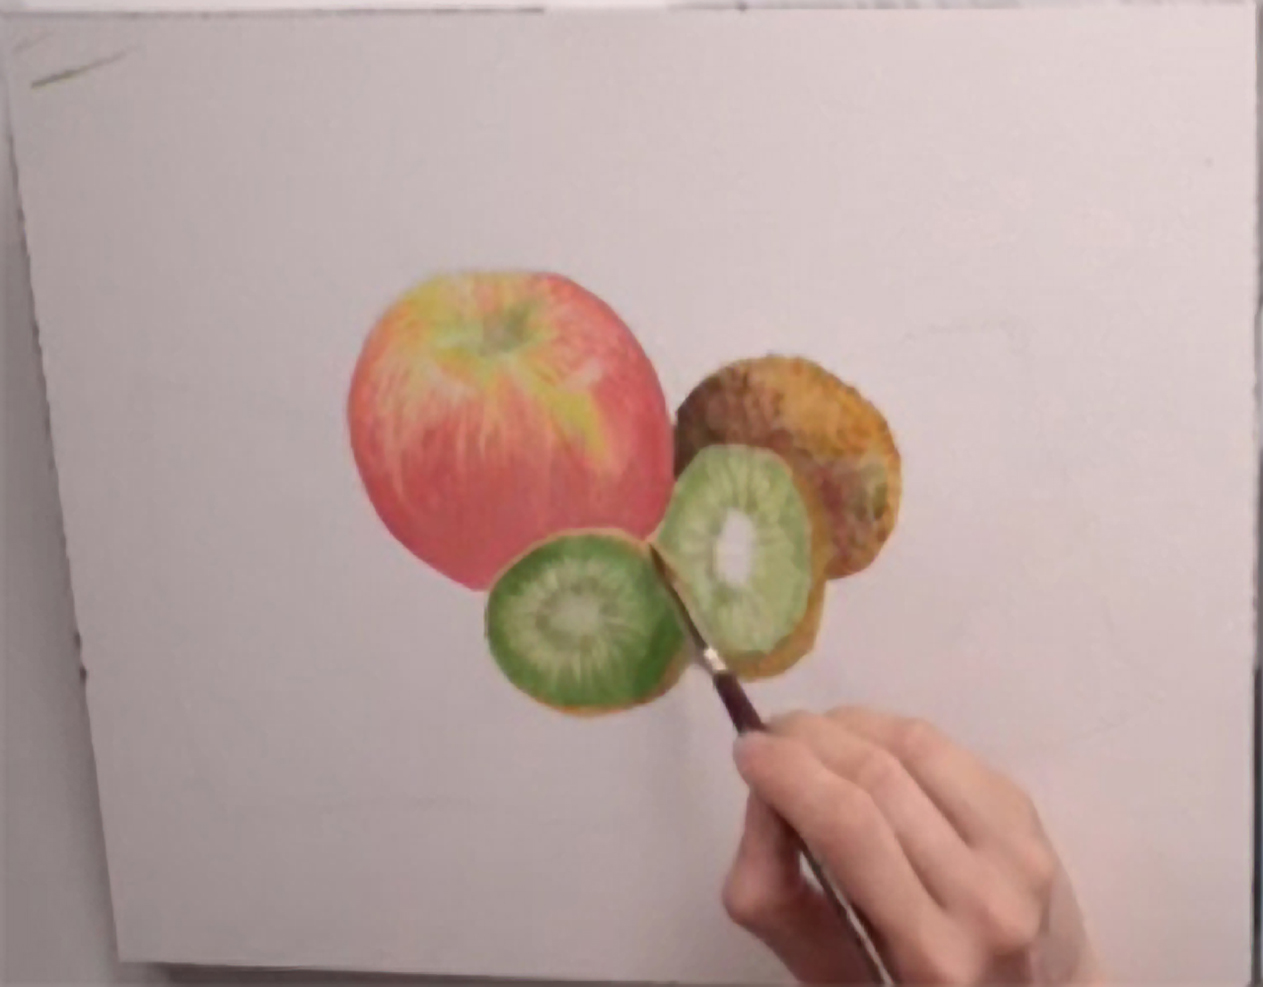 1263x987 Painting A Watercolor Still Life An Apple And Kiwis